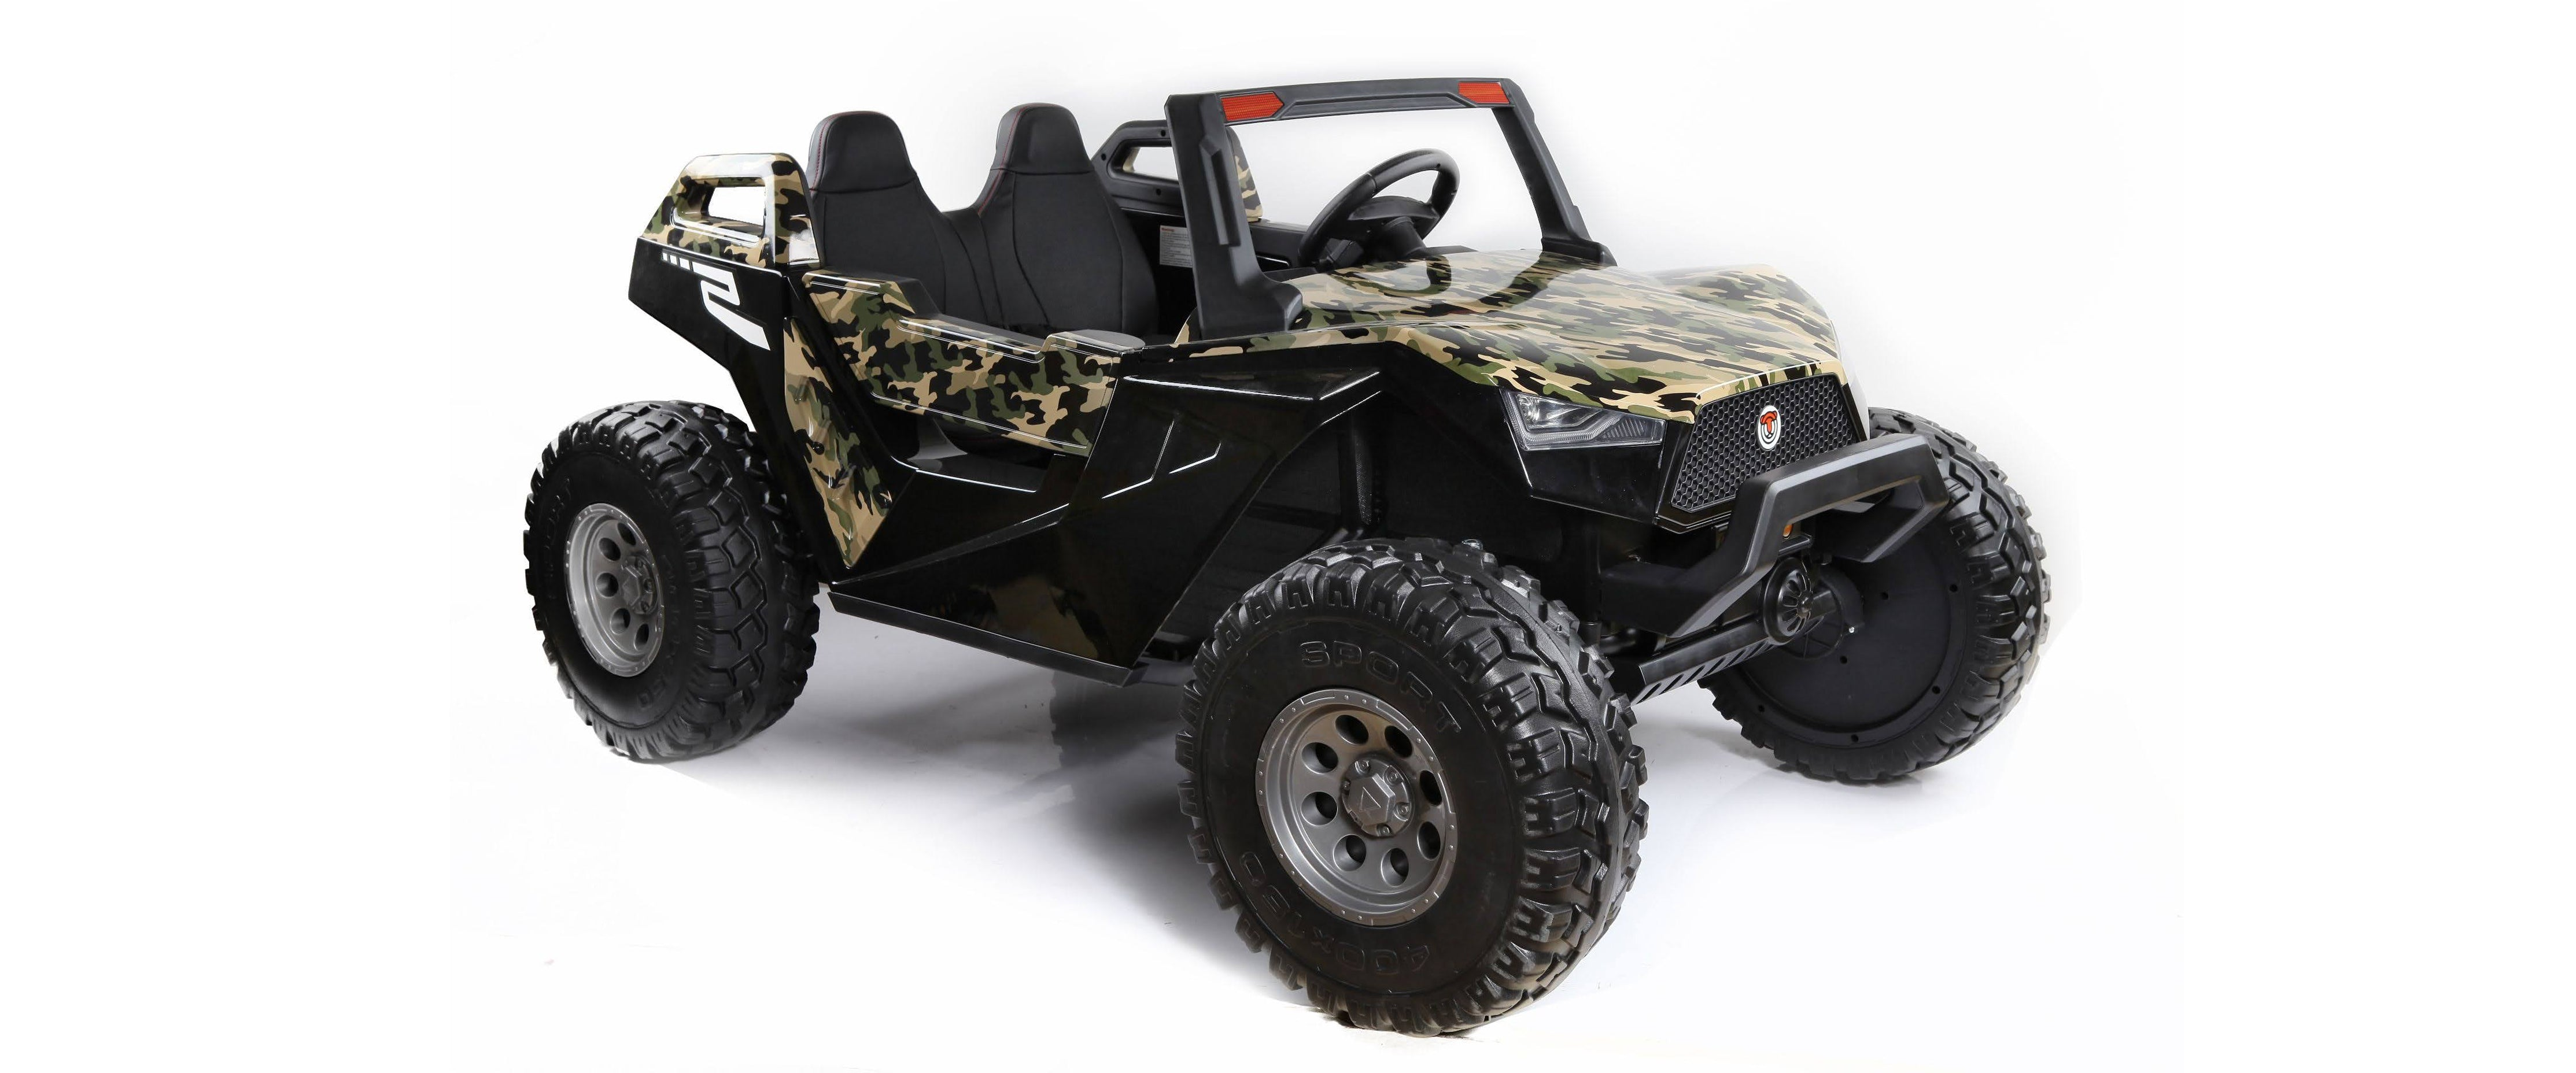 24V 2 seaters off-road dune buggy ride on truck in camo green by voltz toys